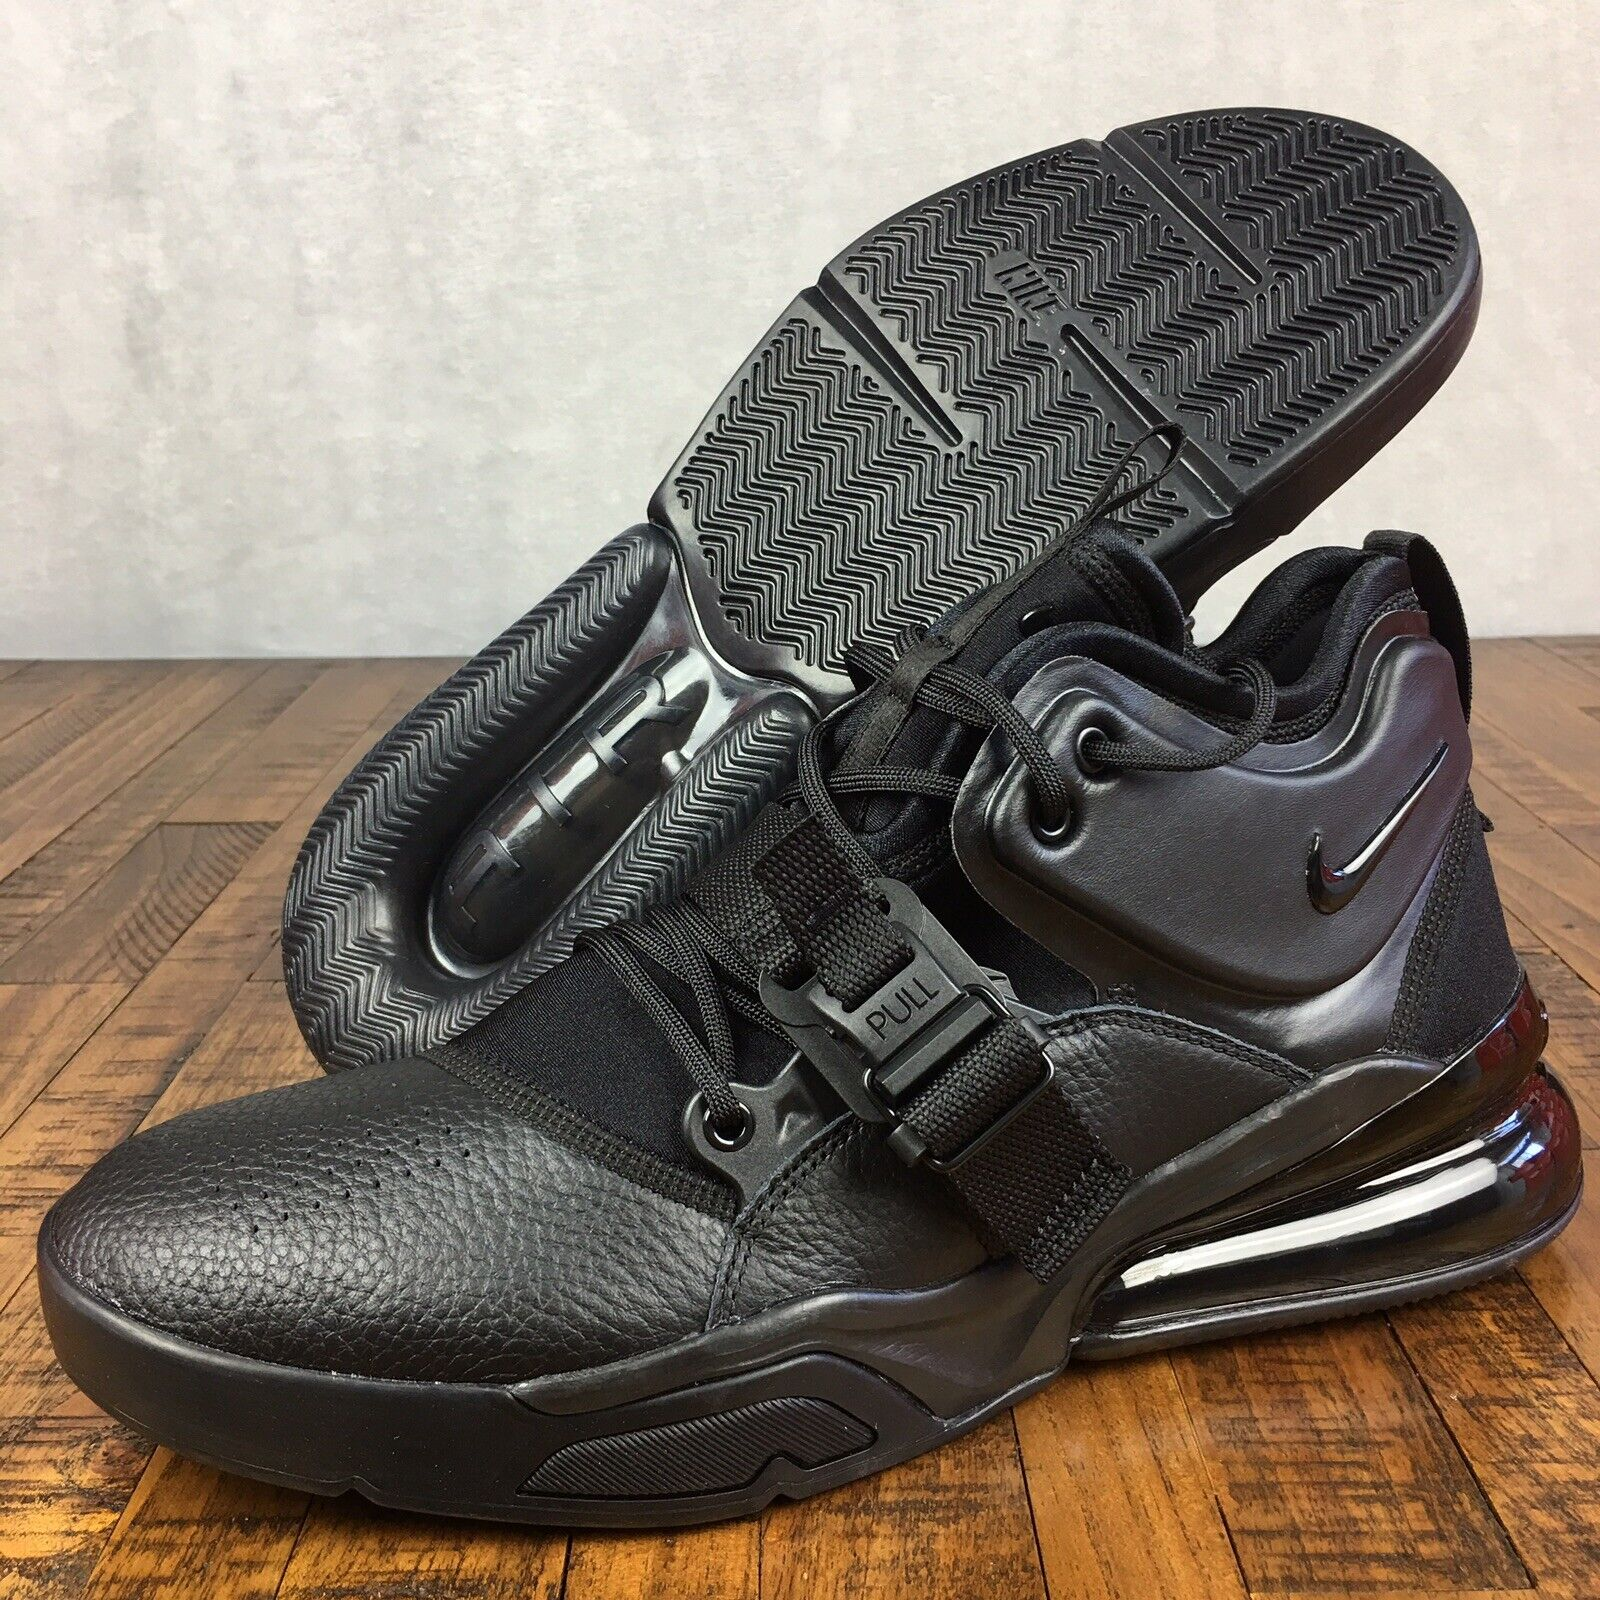 Nike Air Force 270 shoes Sneakers Triple Lifestyle Black AH6772-010 Mens Size 12